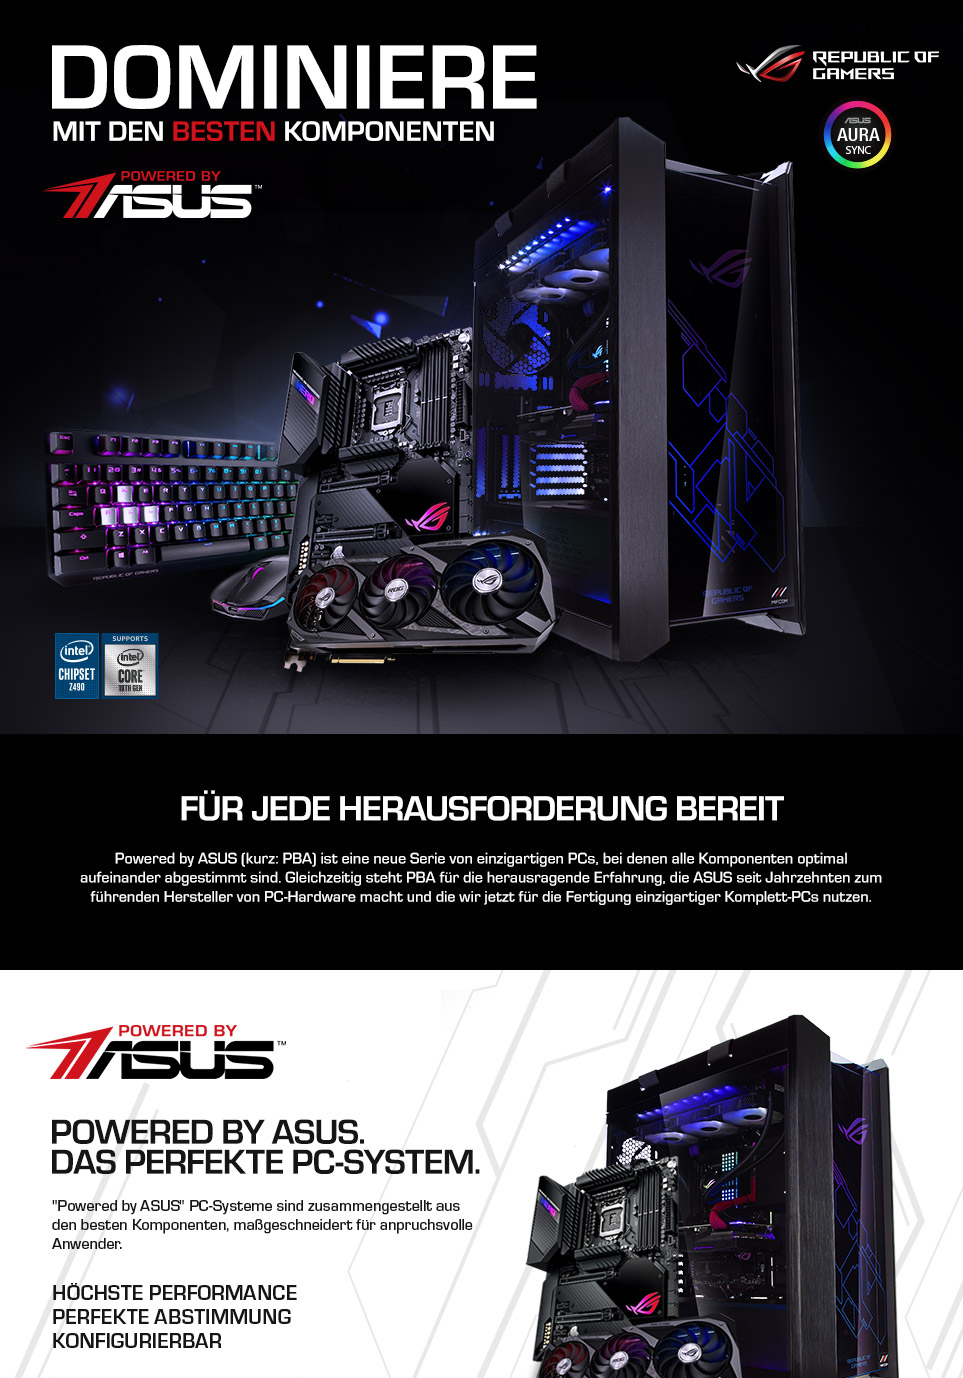 Powered by ASUS Landingpage Teil 1